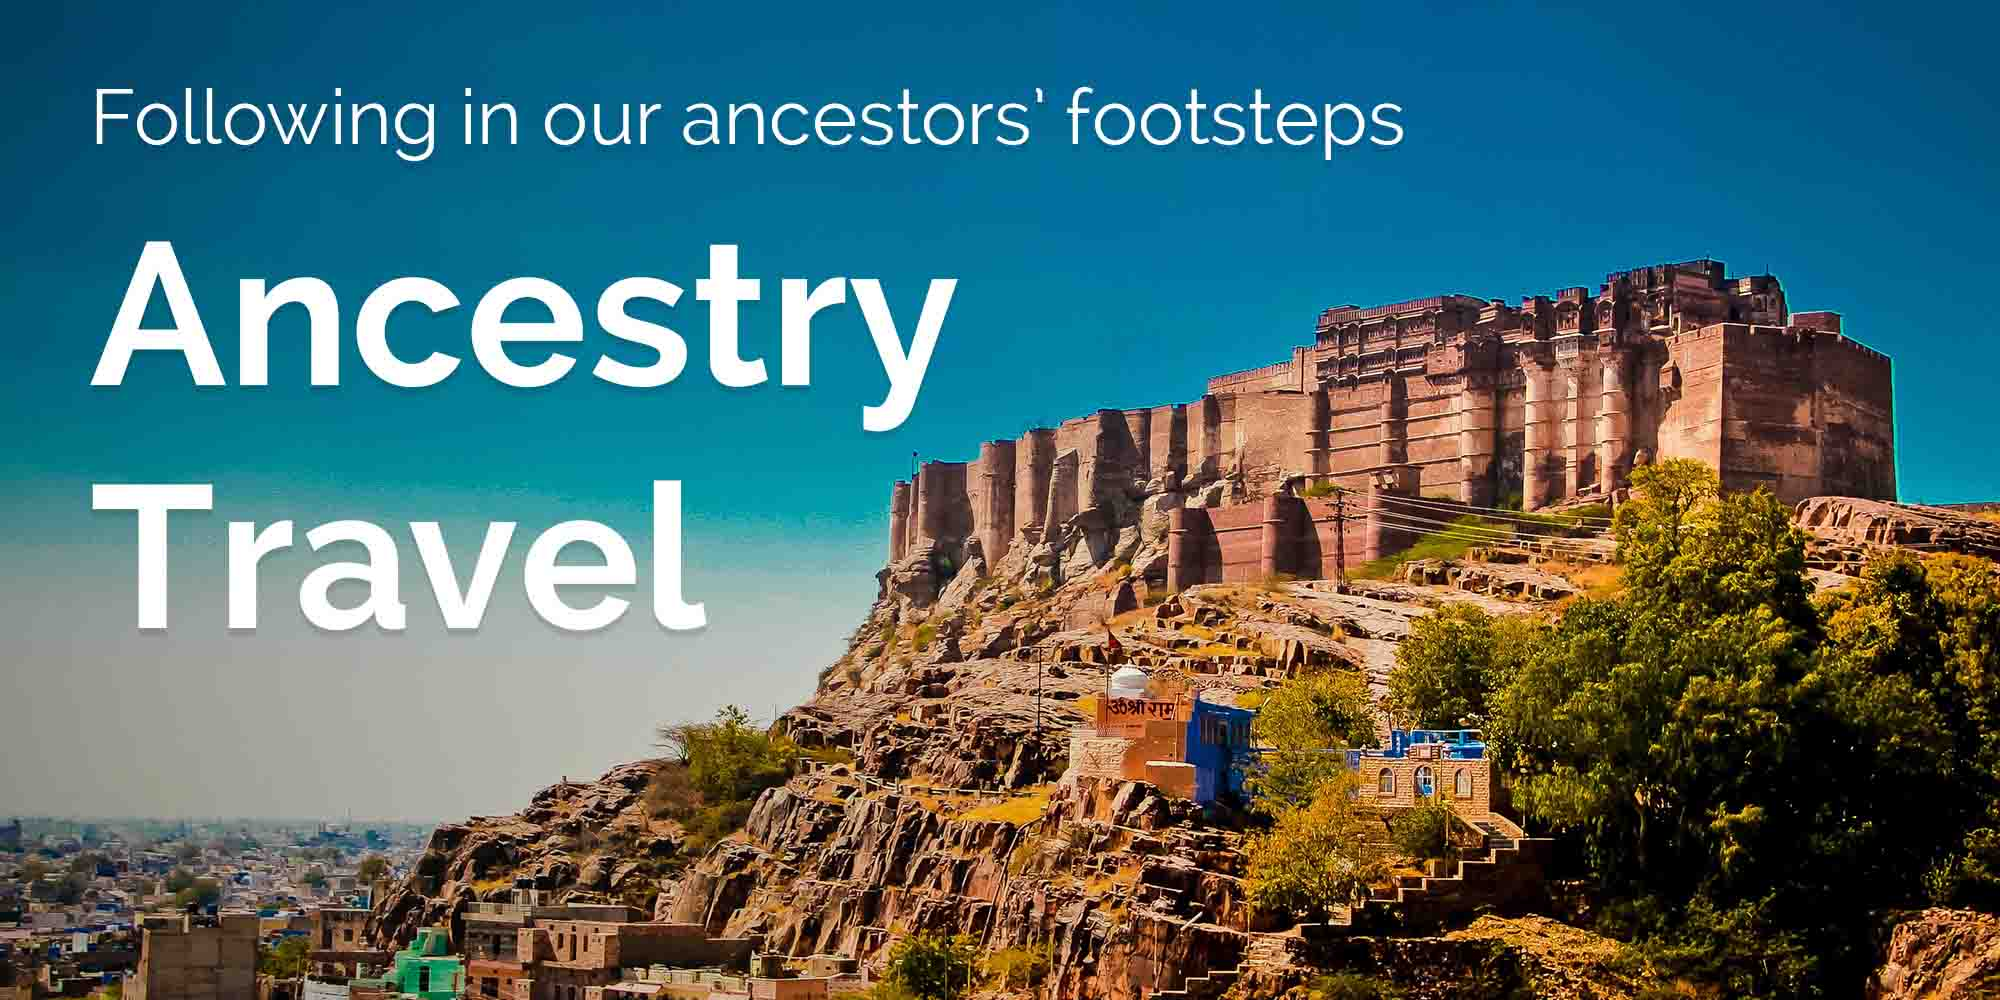 following in our ancestors' footsteps